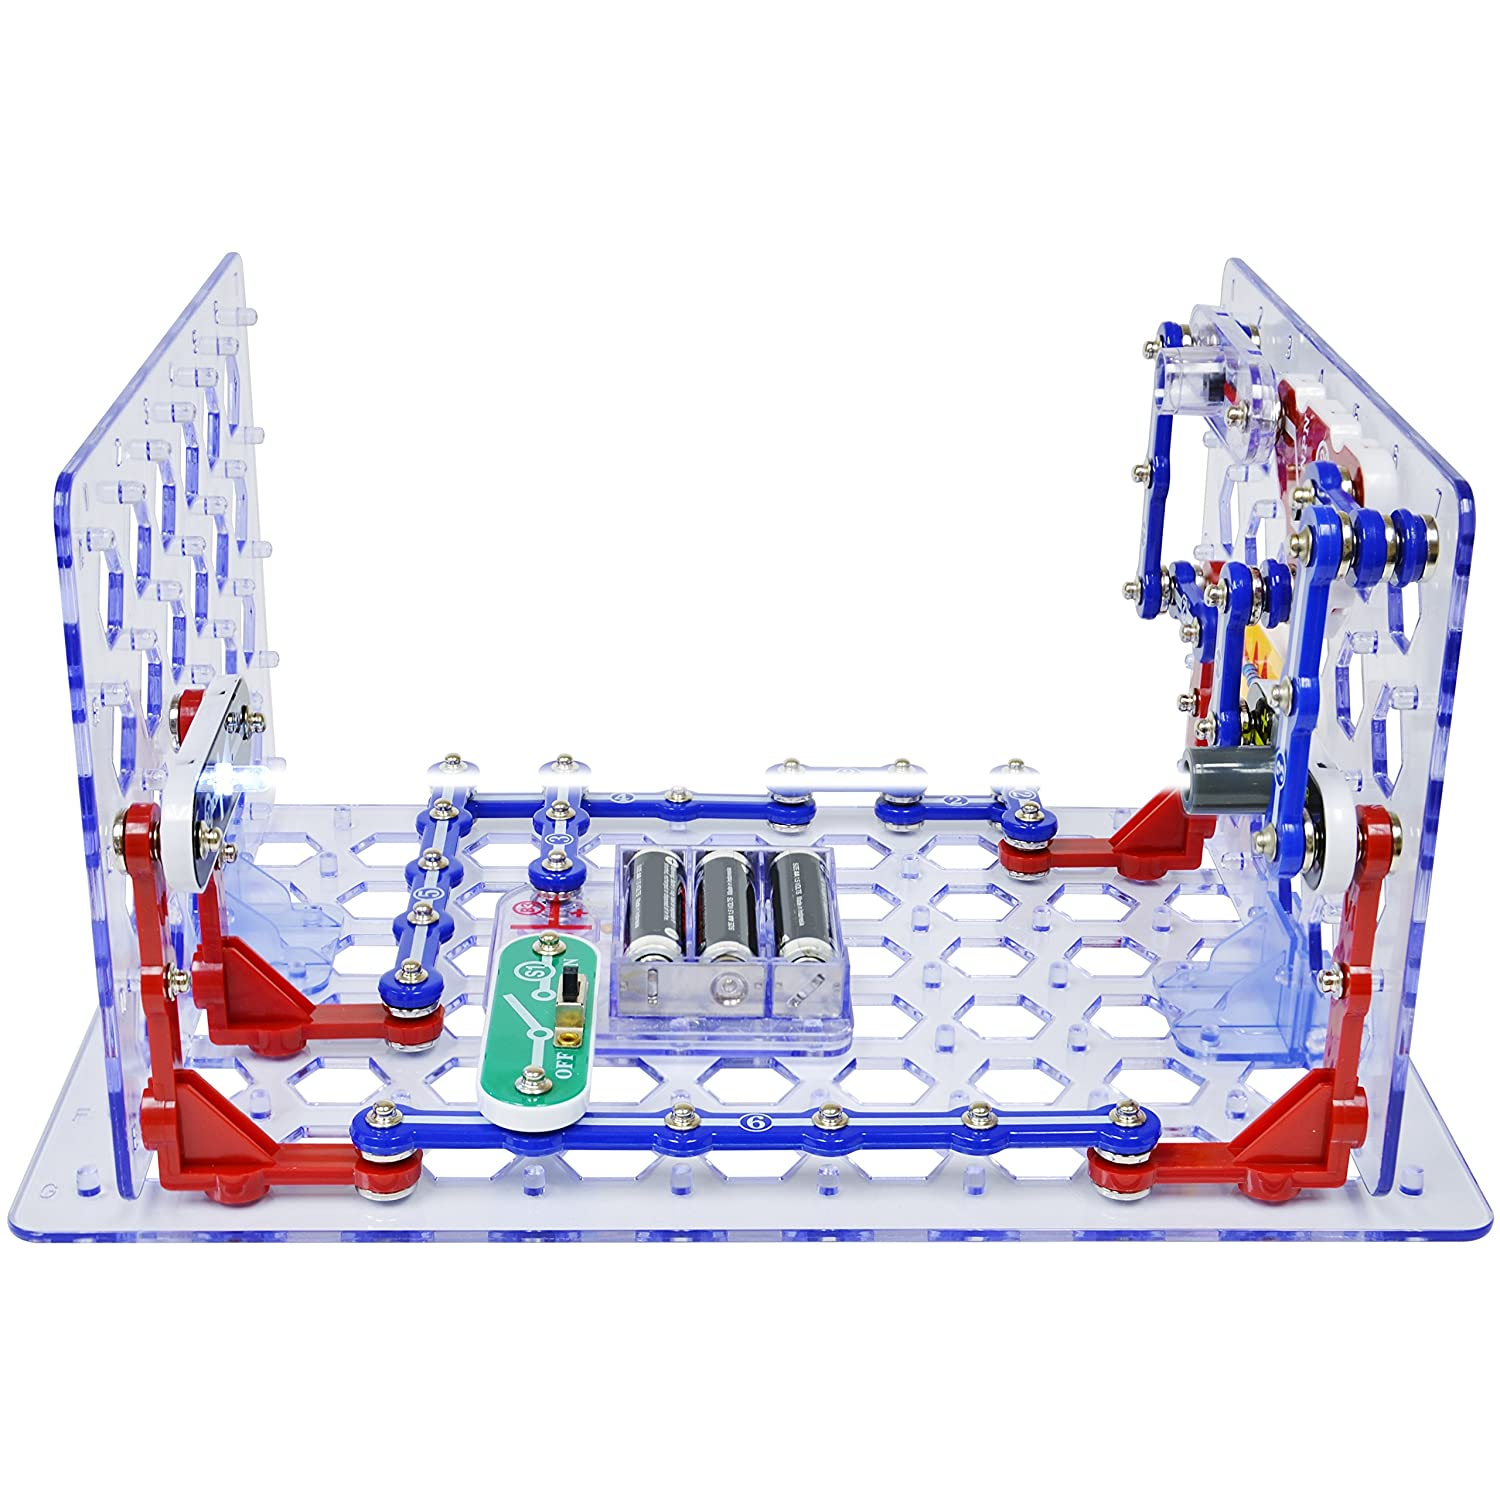 Snap Circuits 3d Illumination Electronics Exploration R Electronic And Educational Toys Kit Over 150 Stem Projects 4 Color Project Manual 50 Modules Unlimited Fun